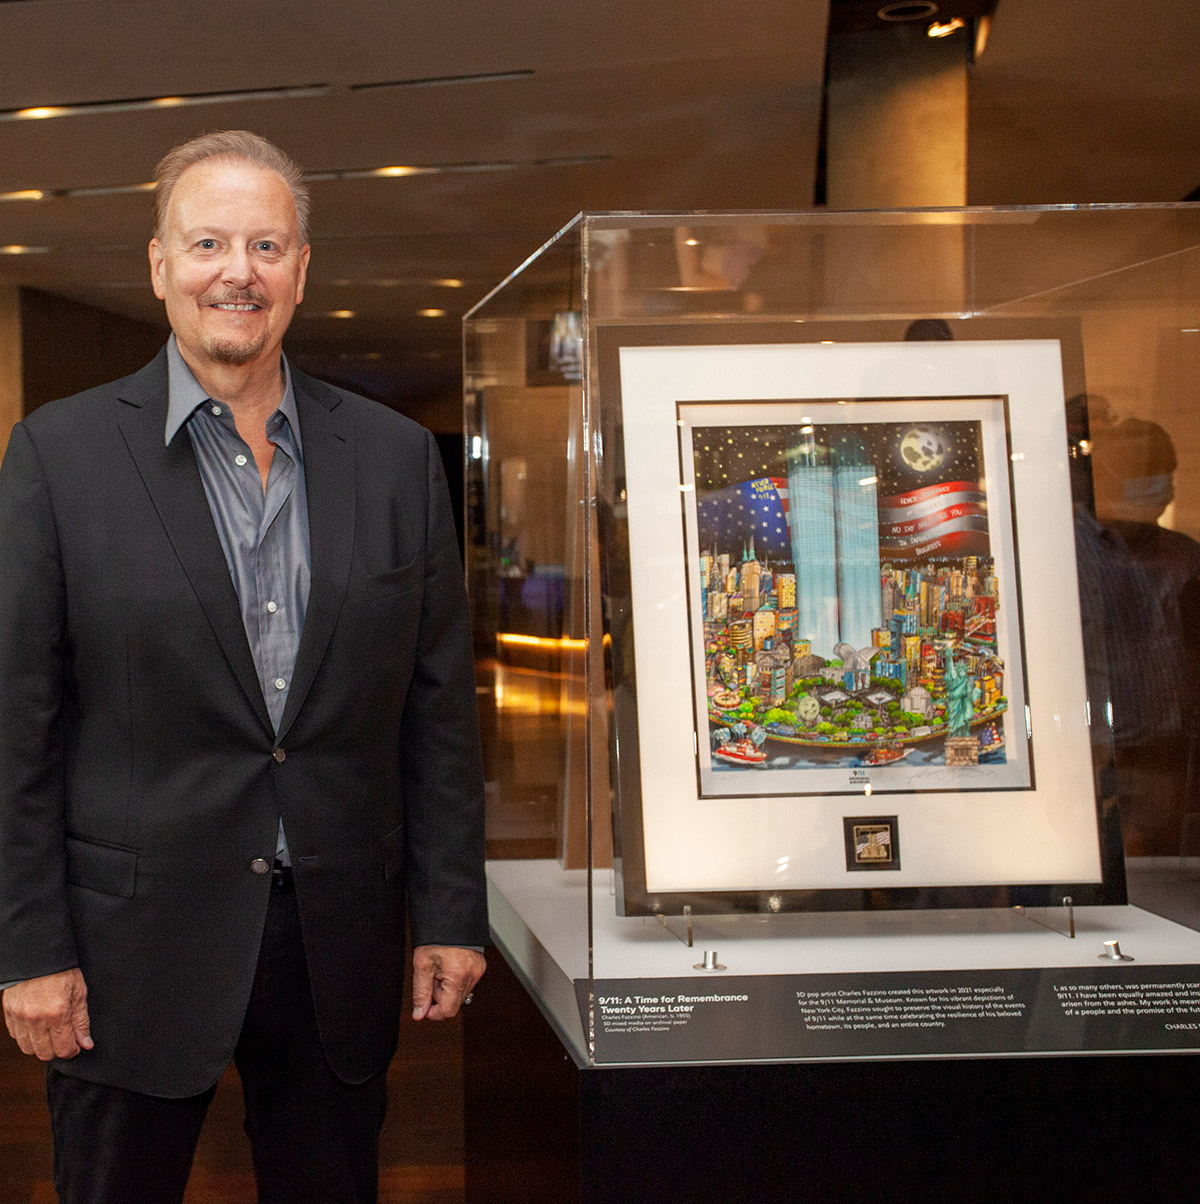 """Charles Fazzino standing next to his original memorial piece titled """" 9/11: A Time for Remembrance, Twenty Years Later"""""""